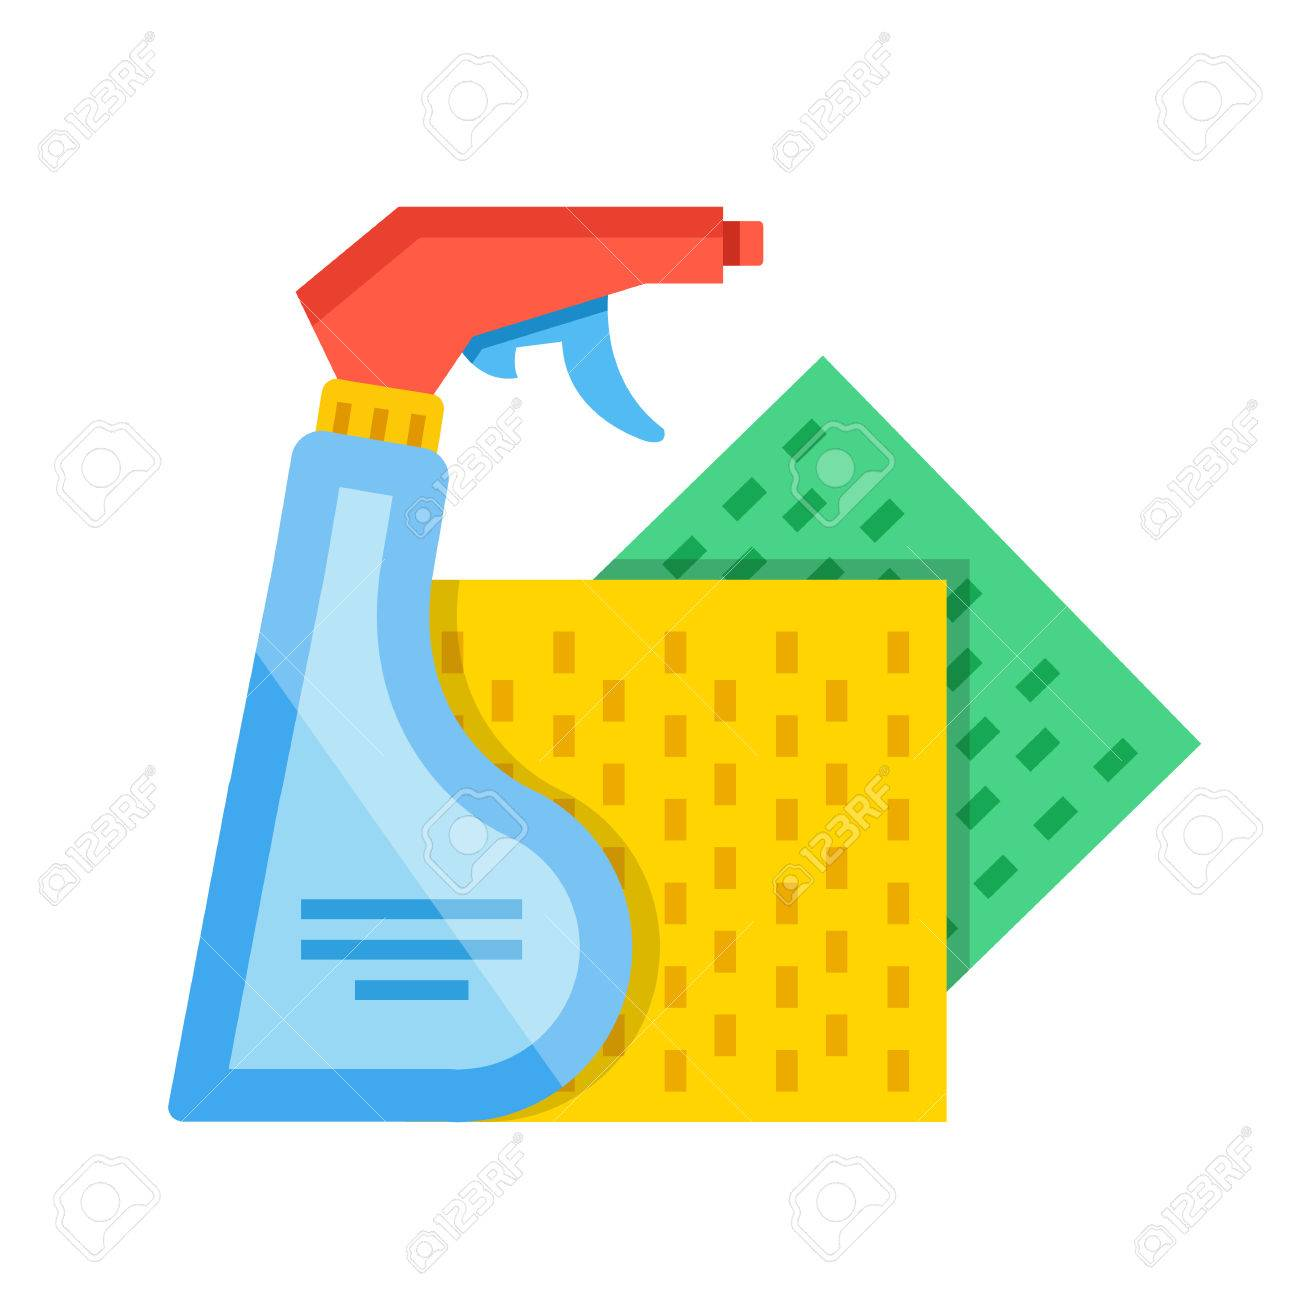 Sponge diagram of modern diy wiring diagrams detergent spray bottle and green and yellow sponge cloths cleaning rh 123rf com sponge diagram no labels syconoid sponge diagram ccuart Images